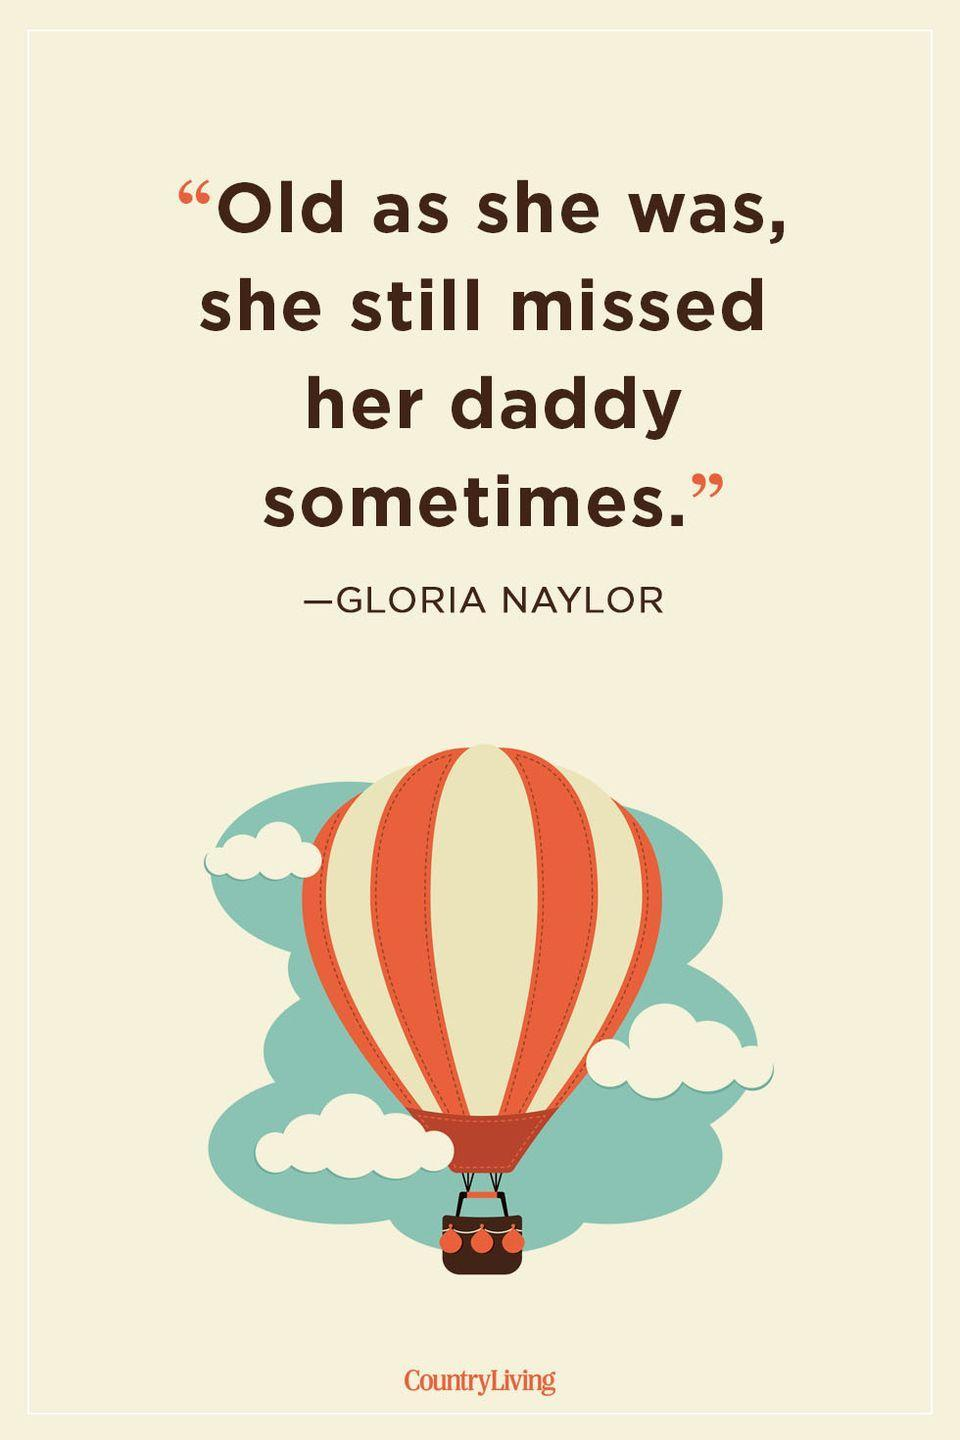 "<p>""Old as she was, she still missed her daddy sometimes.""</p>"